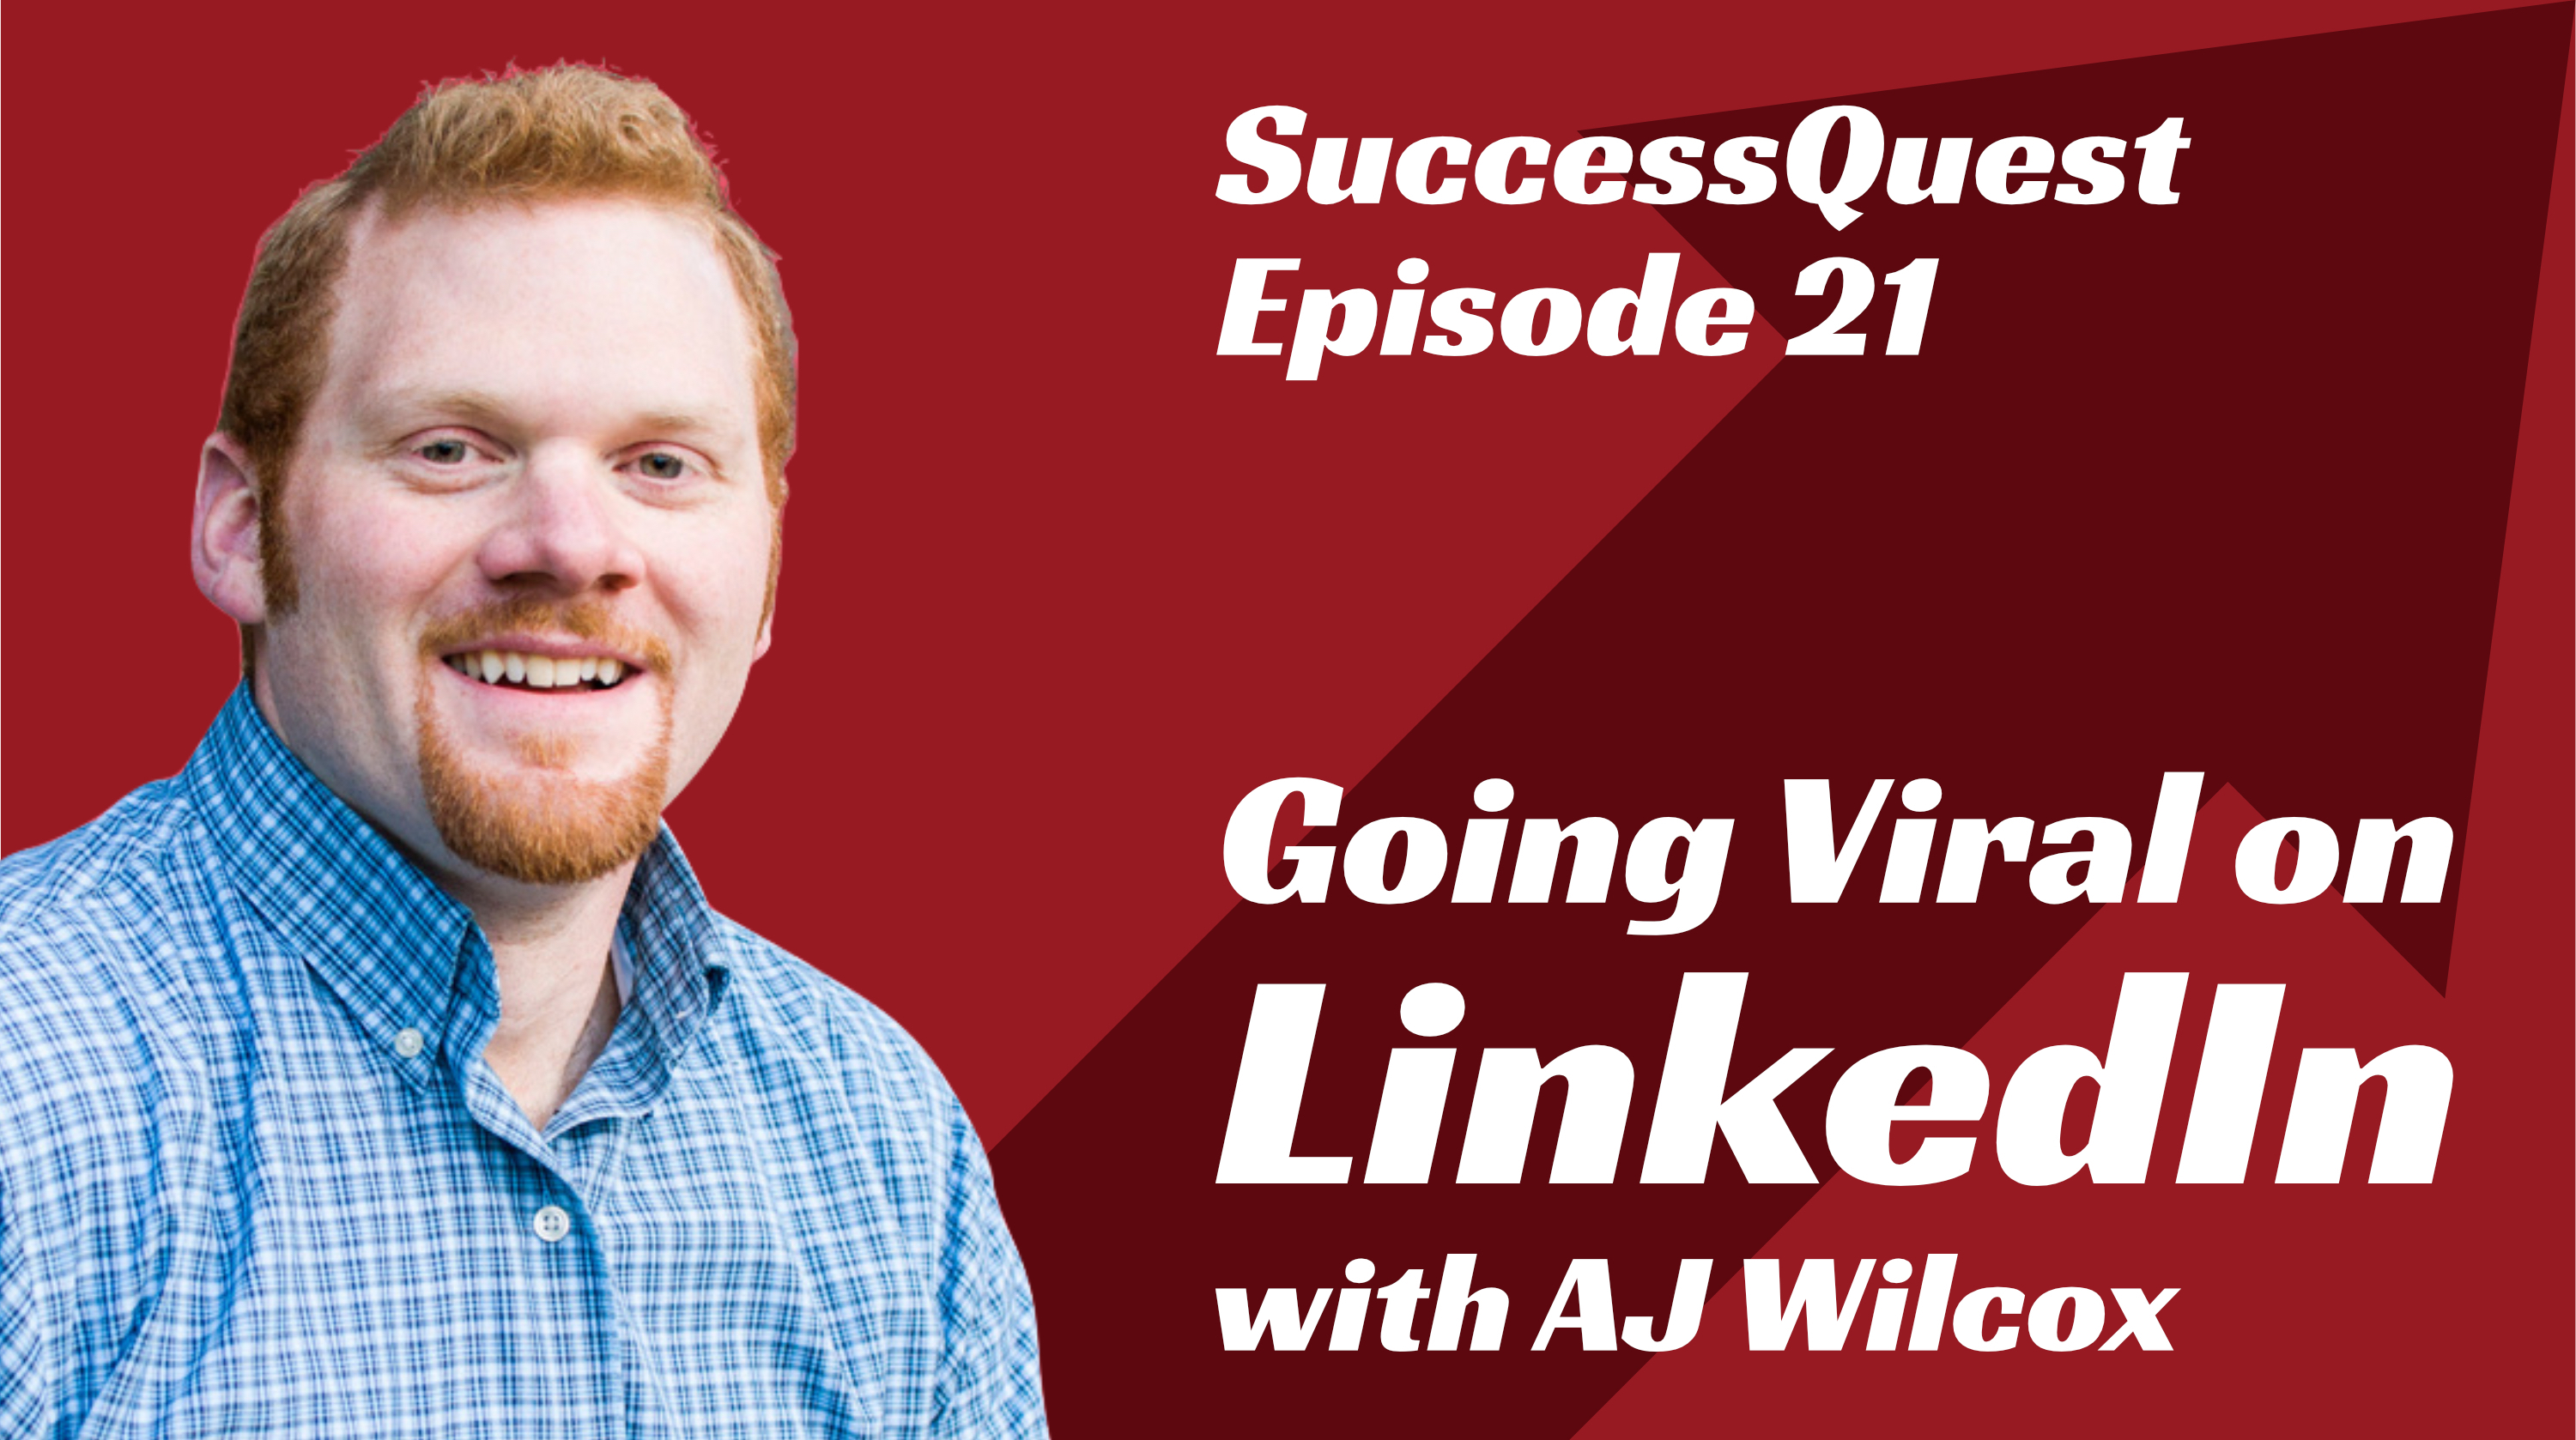 Going Viral on LinkedIn Aj Wilcox SuccessQuest